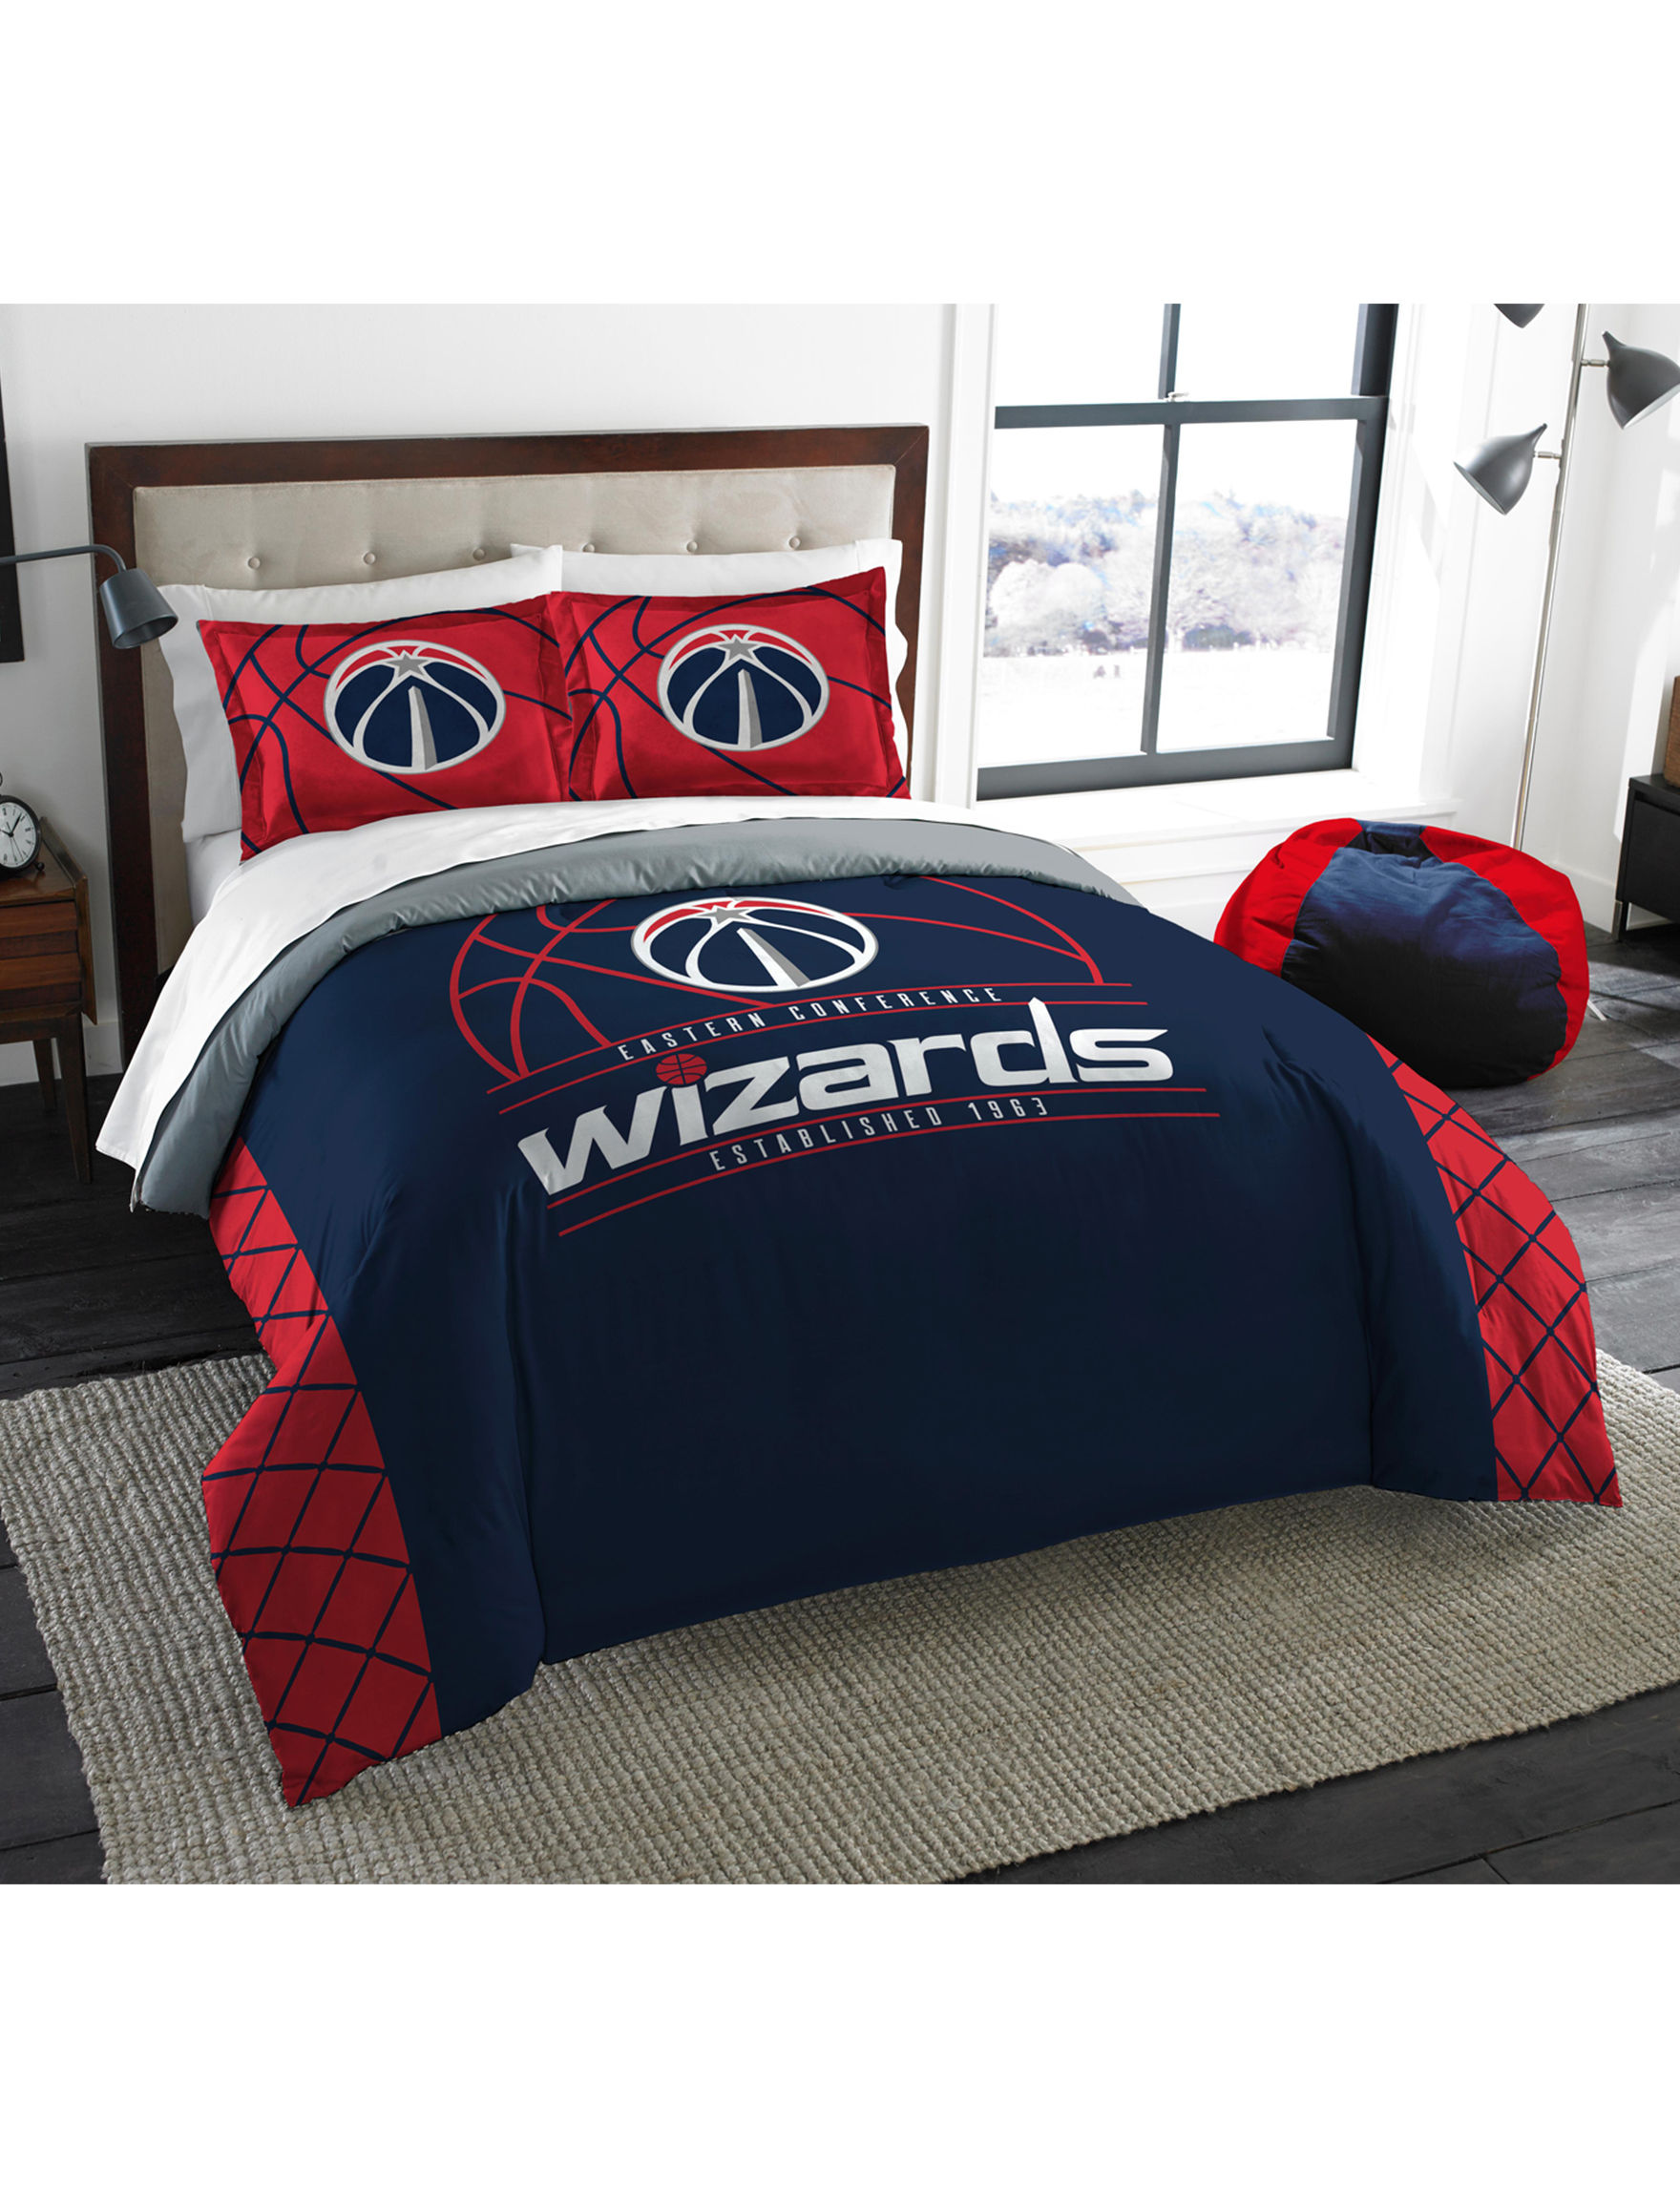 The Northwest Company Red / White / Blue Comforters & Comforter Sets NBA